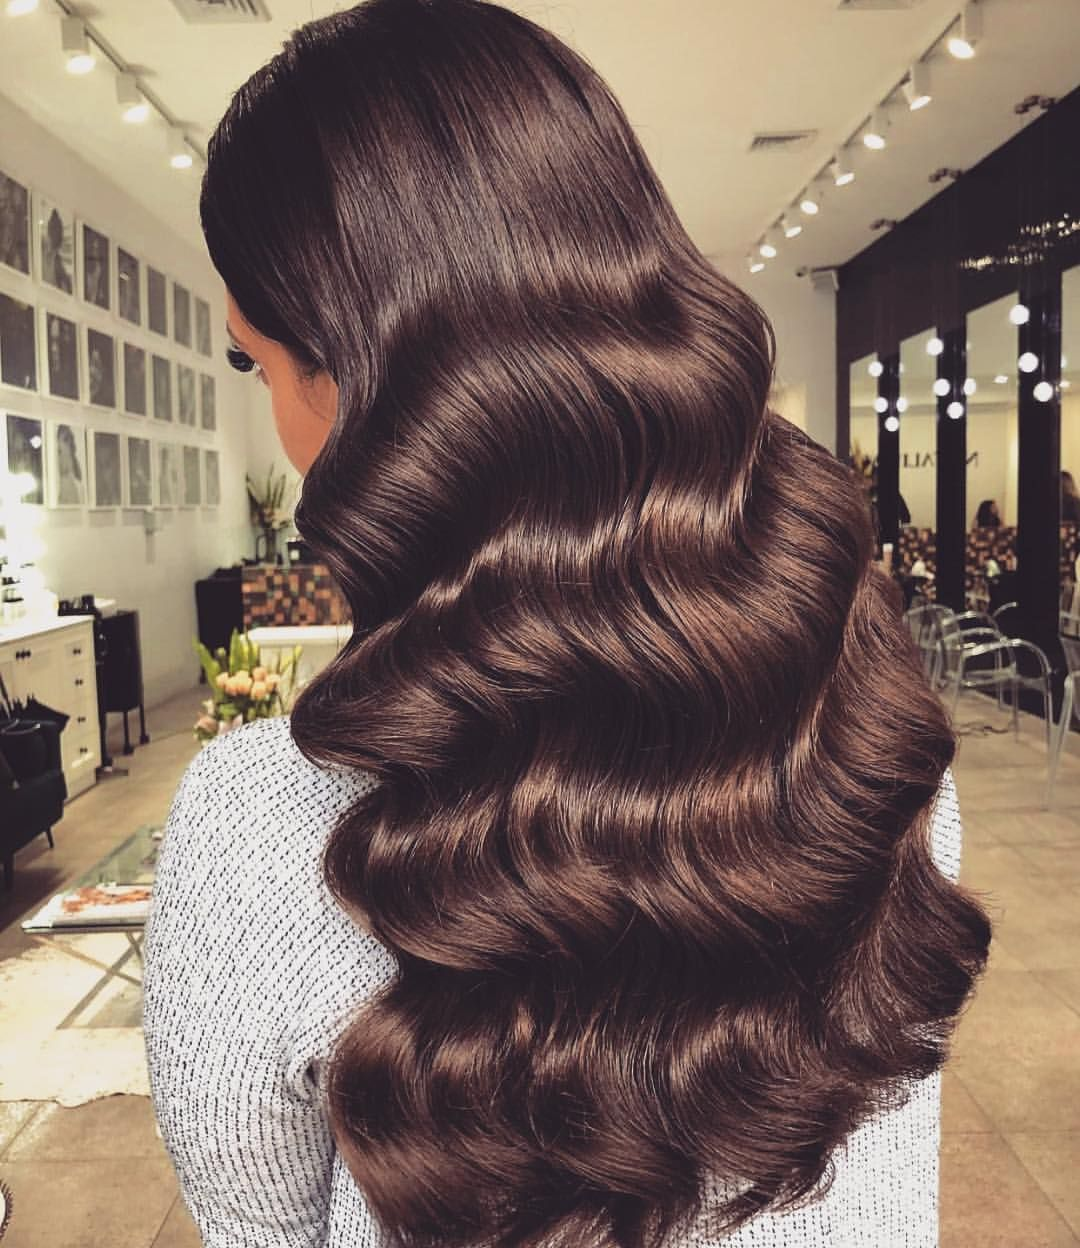 This Is So Lush Drool Worthy Rich Choc Strands By Natalieannehair If You Wouldn T Eat Or Drink Produ Hair Styles Long Hair Styles Hair Waves